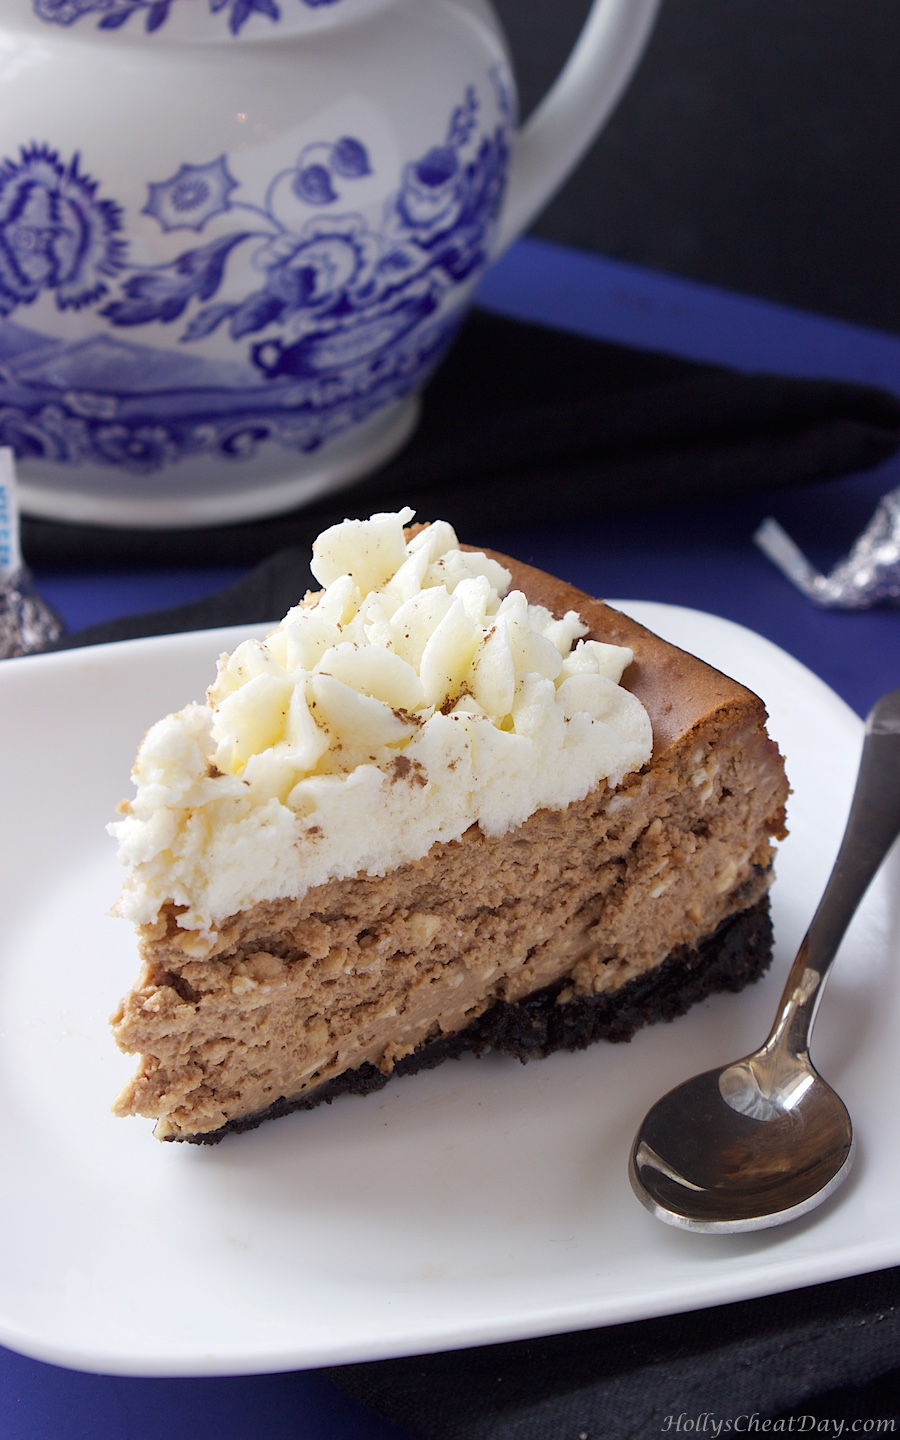 Espresso Chocolate Cheesecake - HOLLY'S CHEAT DAY